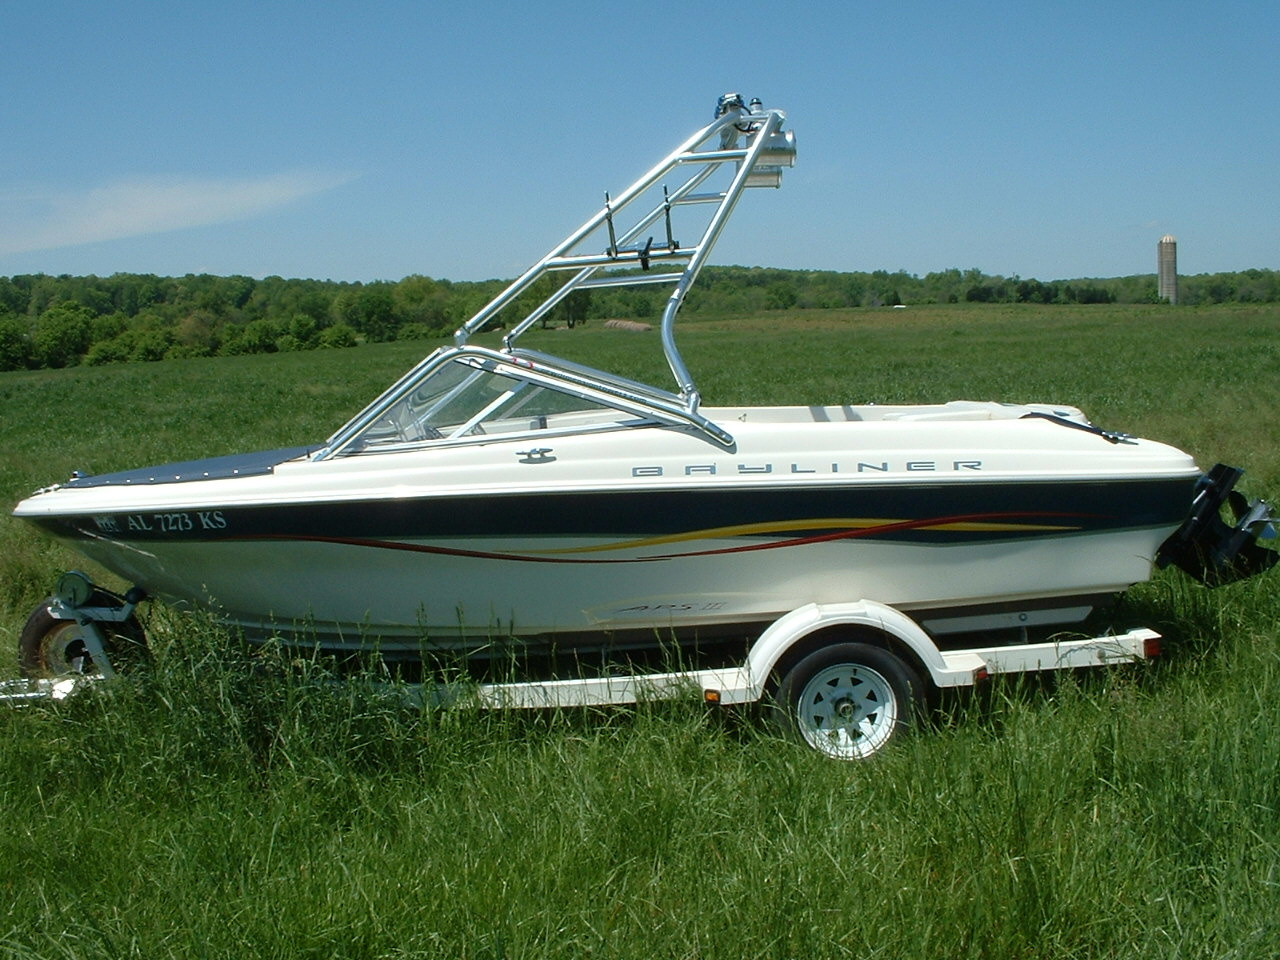 Main image for 2001 bayliner capri 185 wakeboard boat with new dimension tower